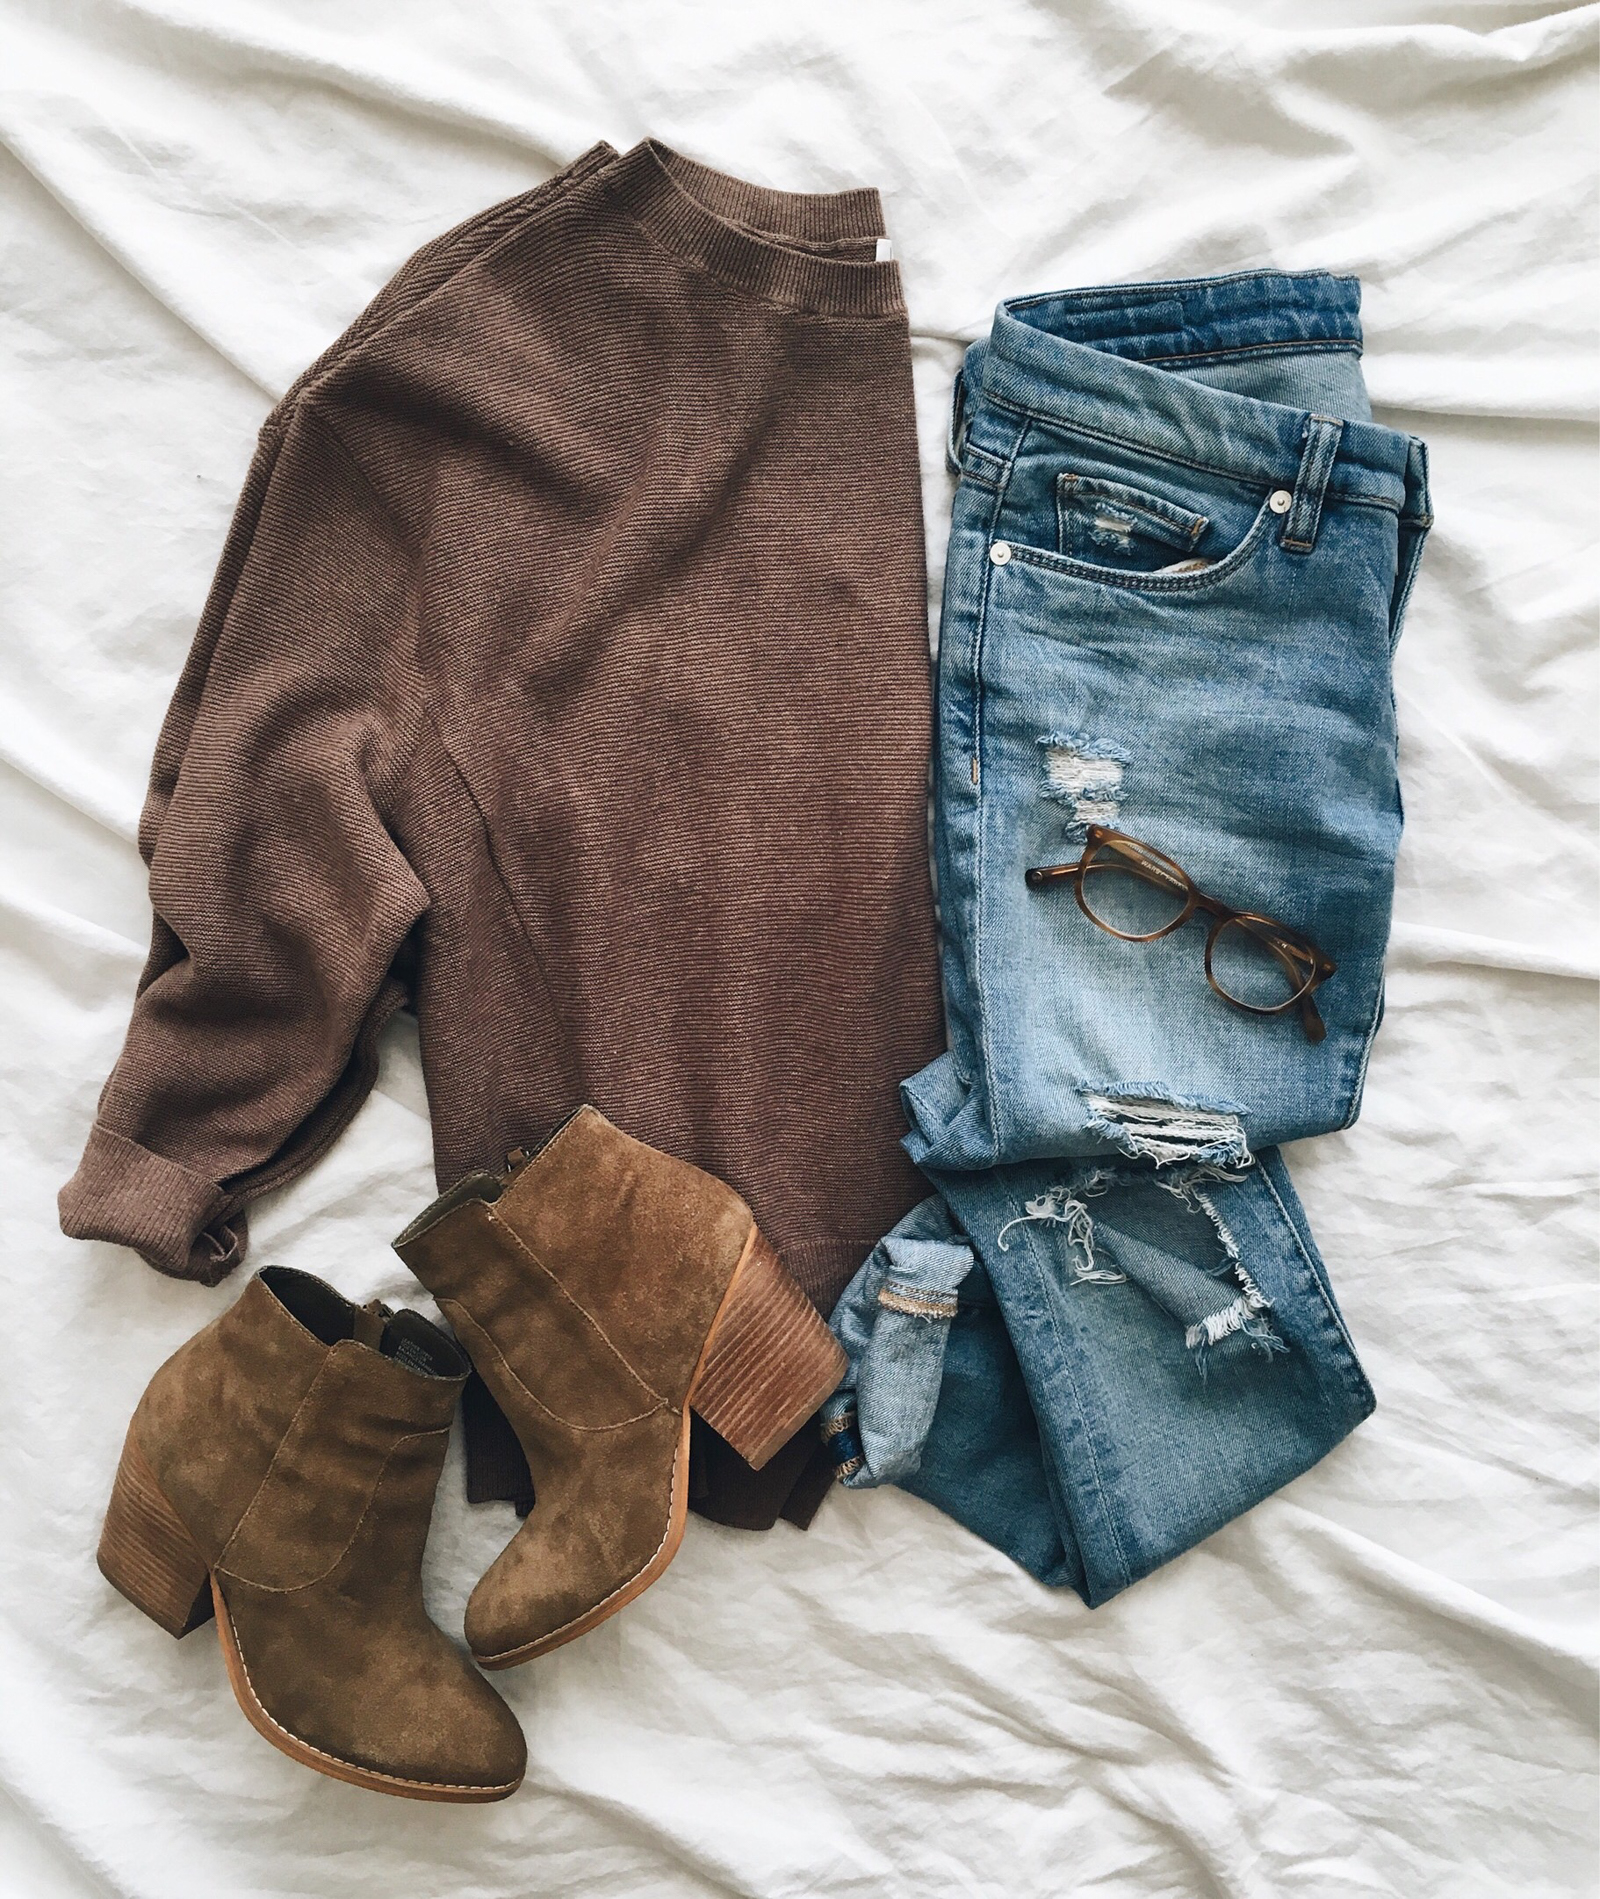 livvyland-blog-olivia-watson-instagram-roundup-austin-texas-cozy-winter-outfit-2